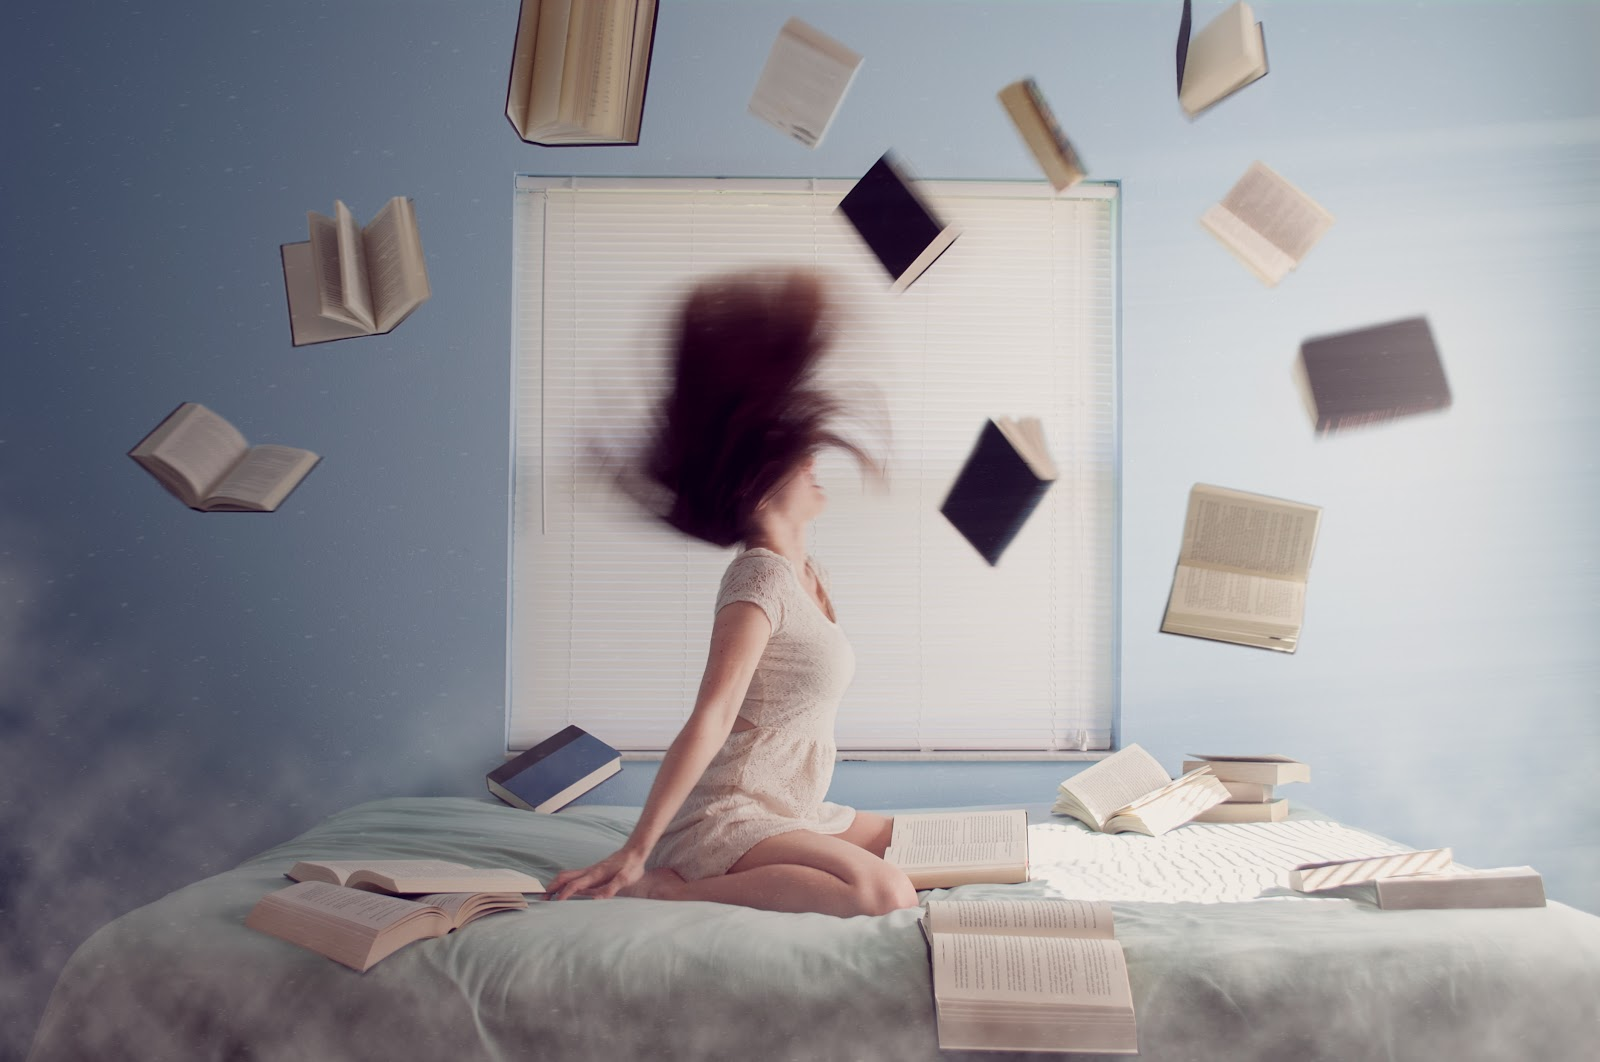 woman shaking head on bed books flying around her when things go wrong